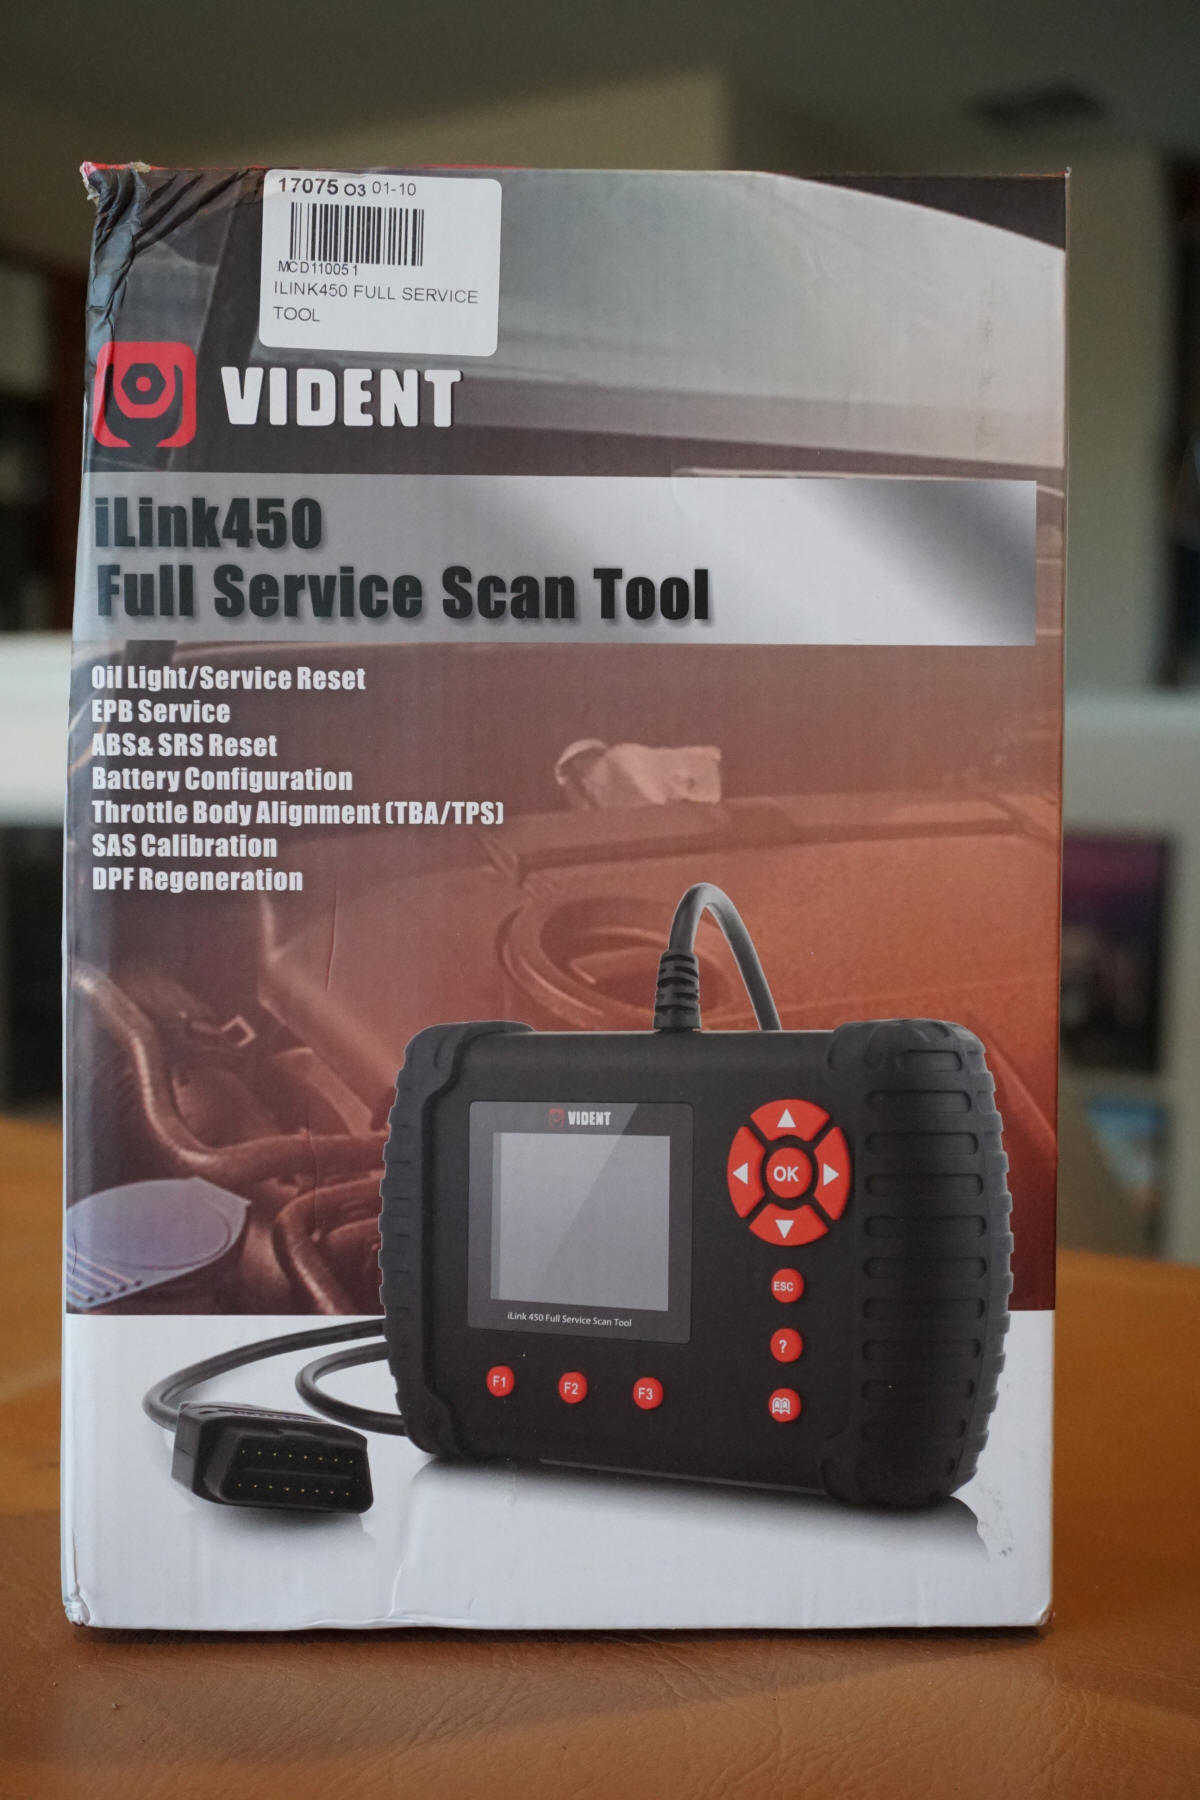 vident-ilink450-full-service-tool-review-01